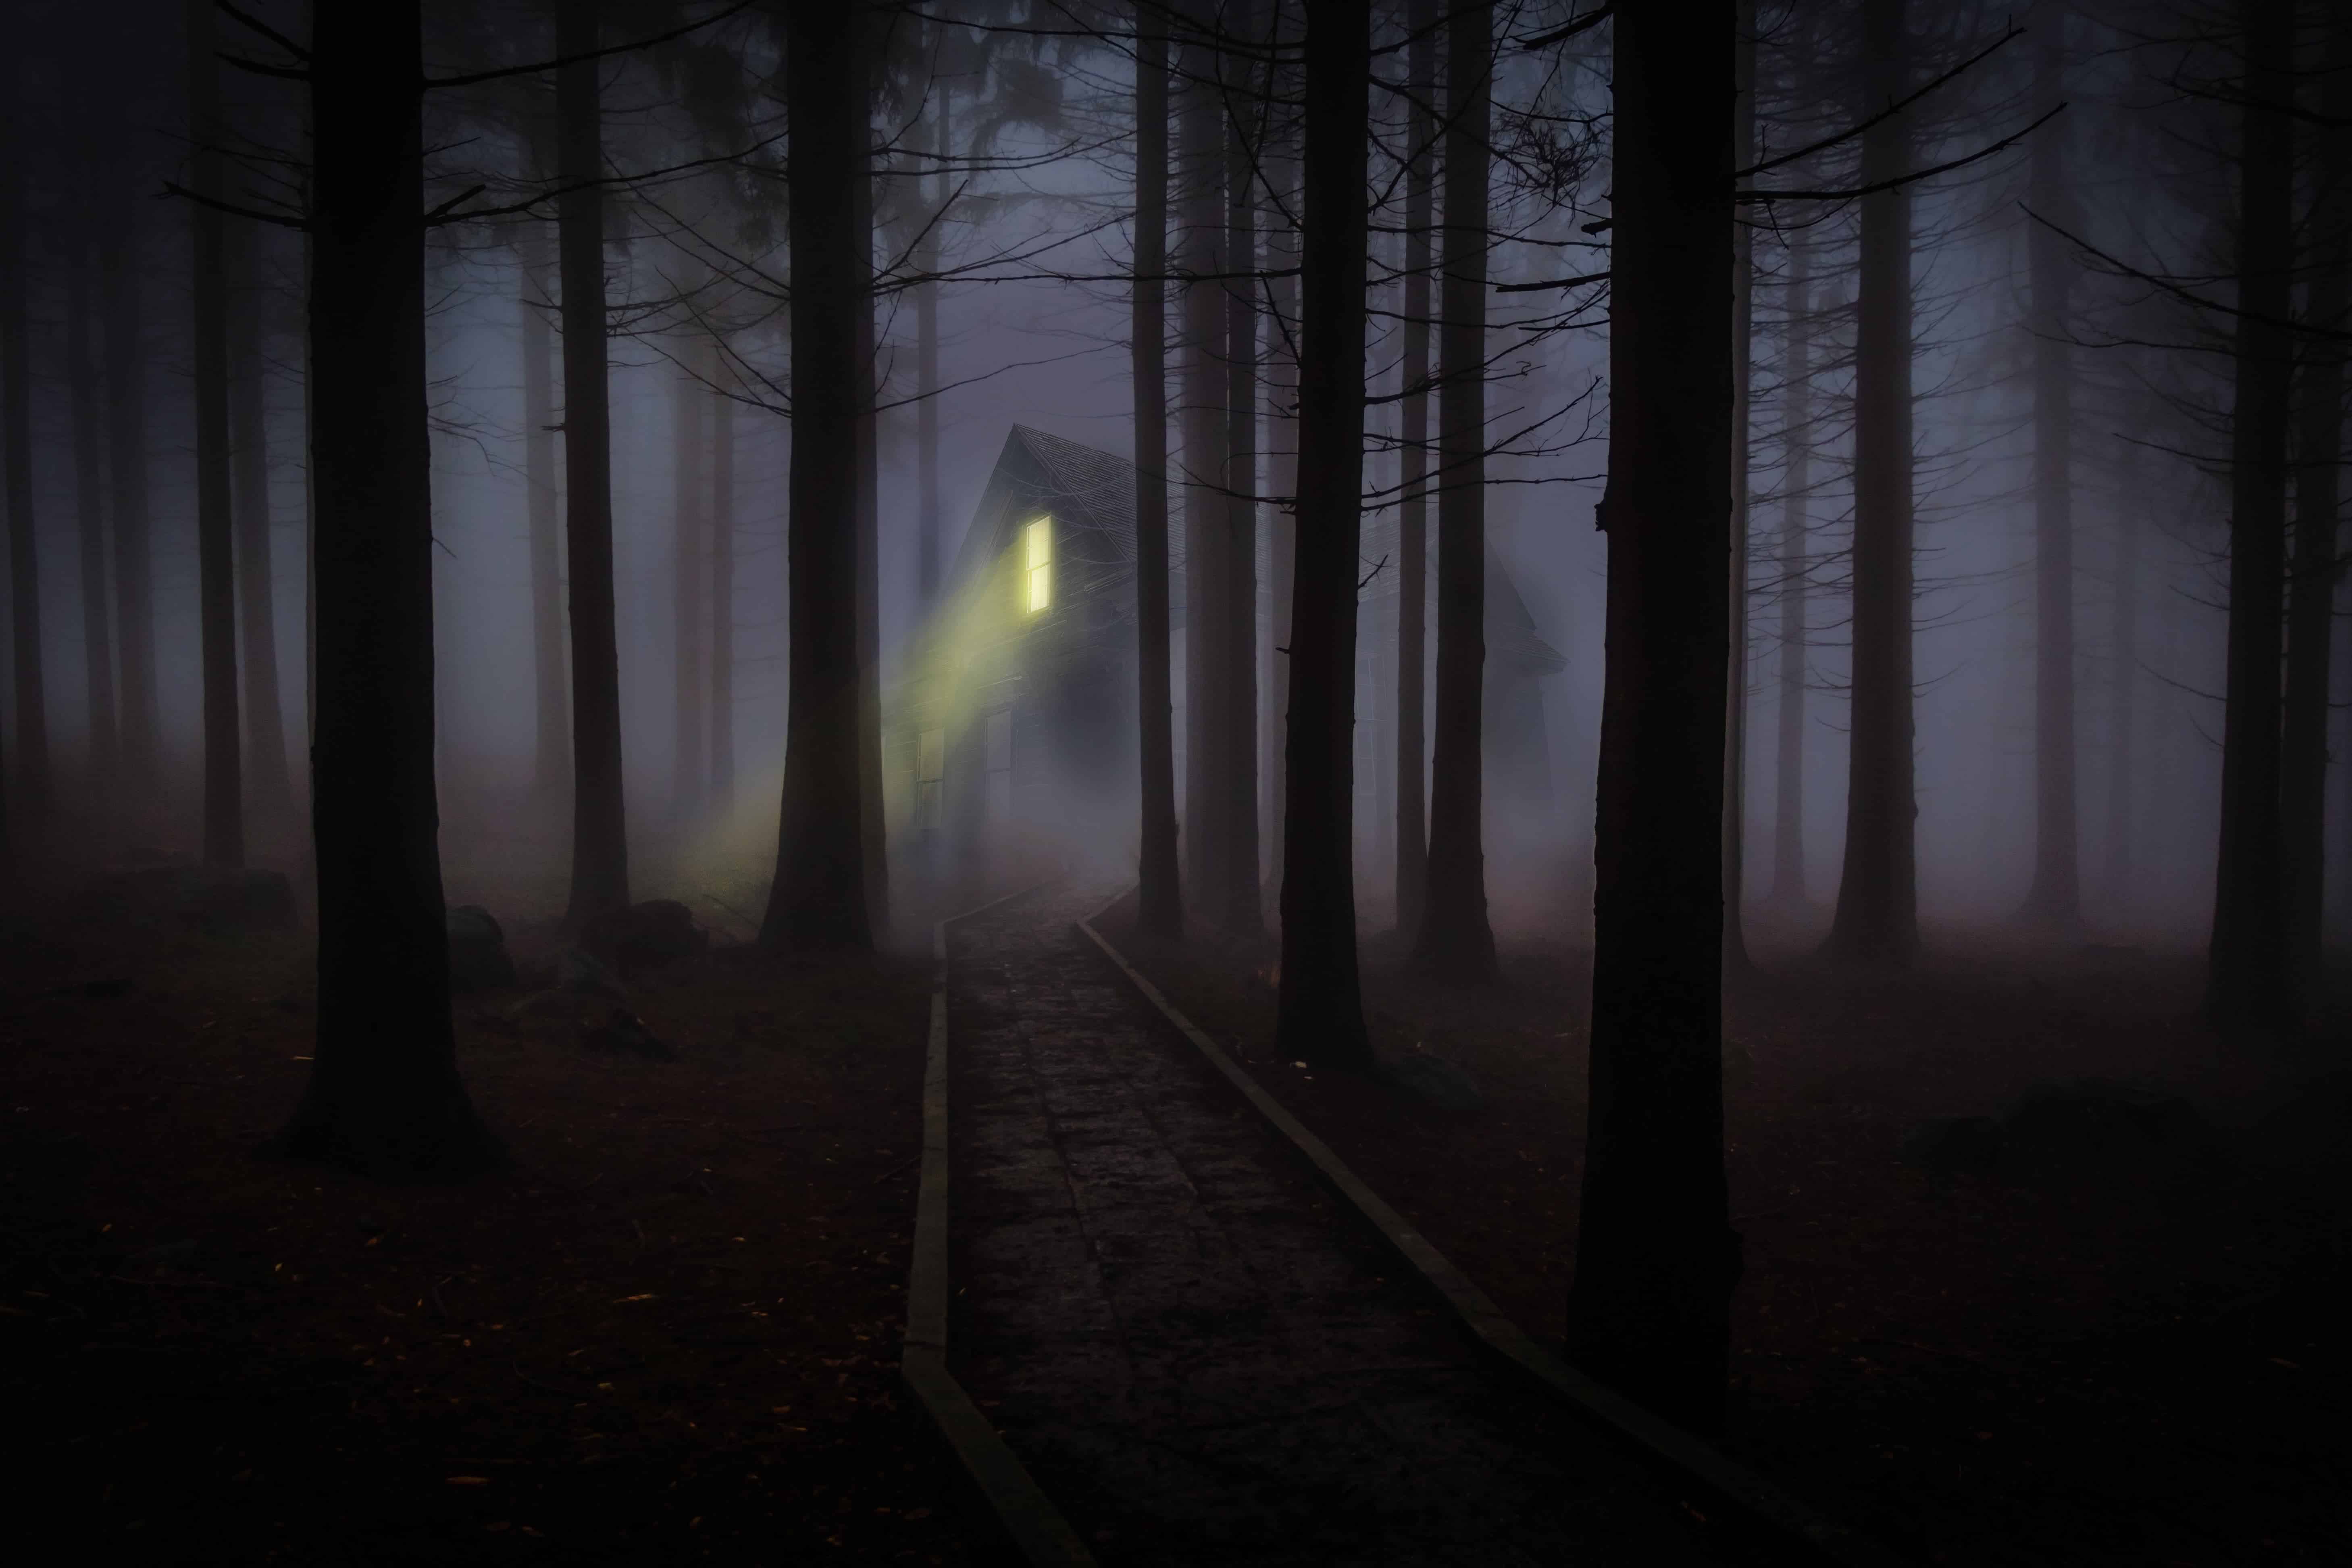 Let's take you through a tunnel of horror stories: Bengaluru and ghosts go together!